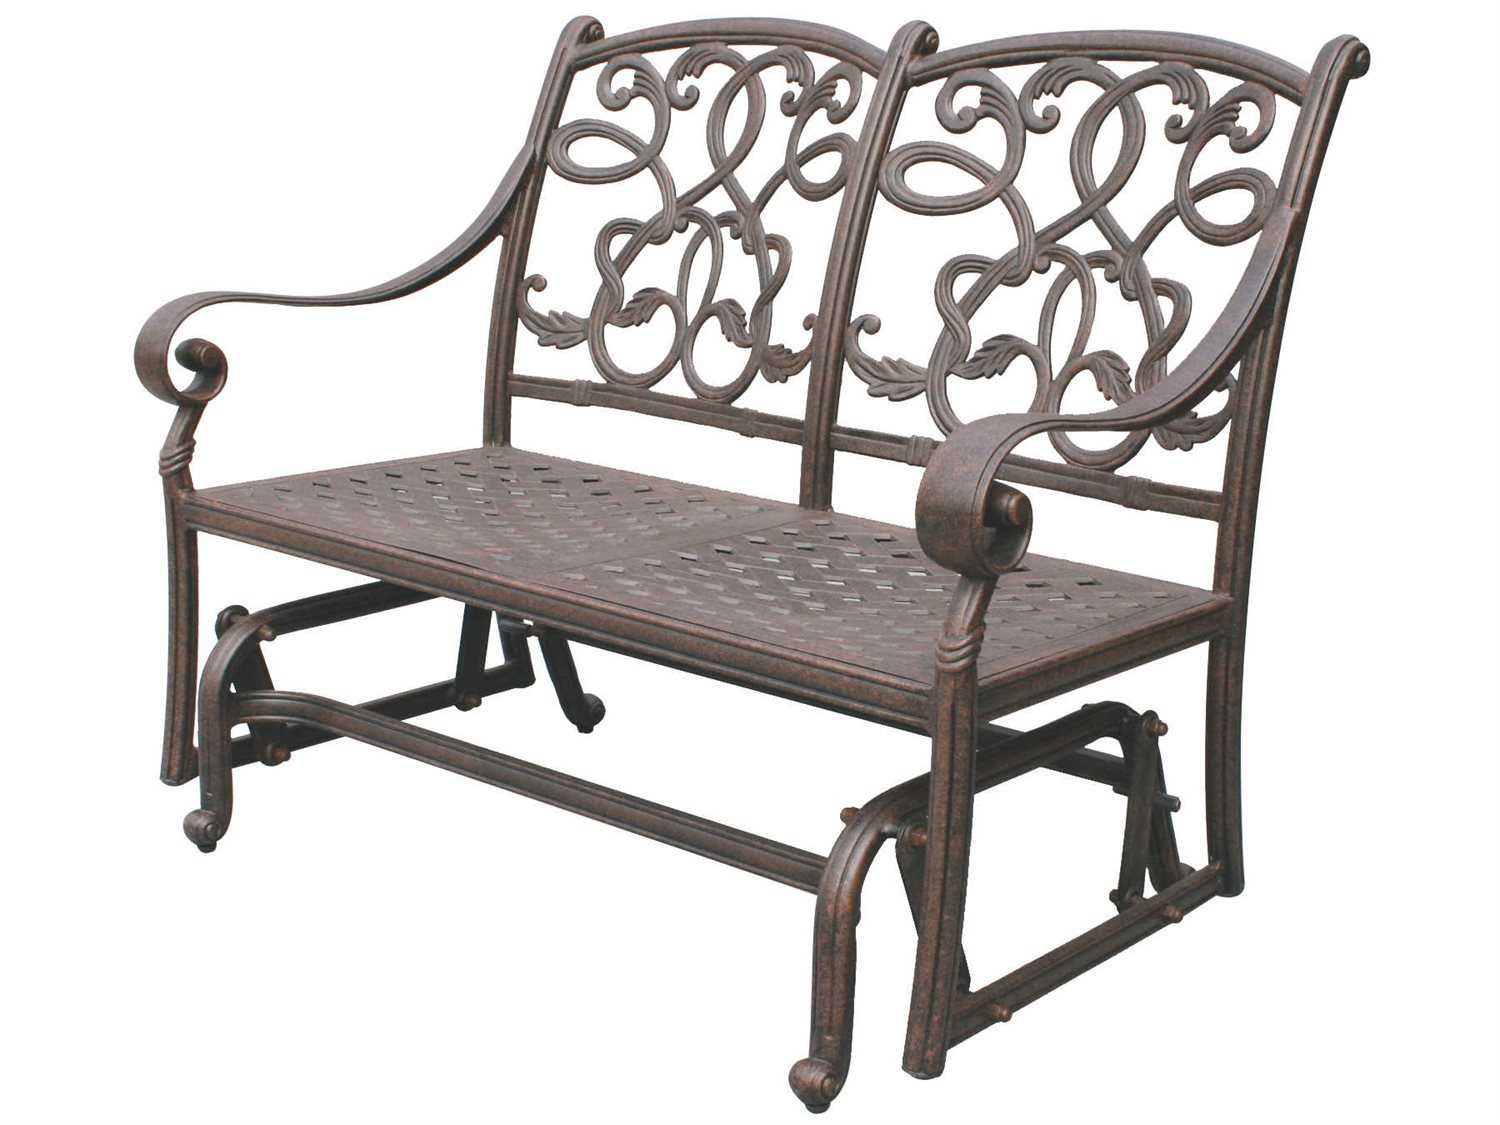 darlee outdoor living standard santa monica replacement loveseat glider seat and back cushion. Black Bedroom Furniture Sets. Home Design Ideas